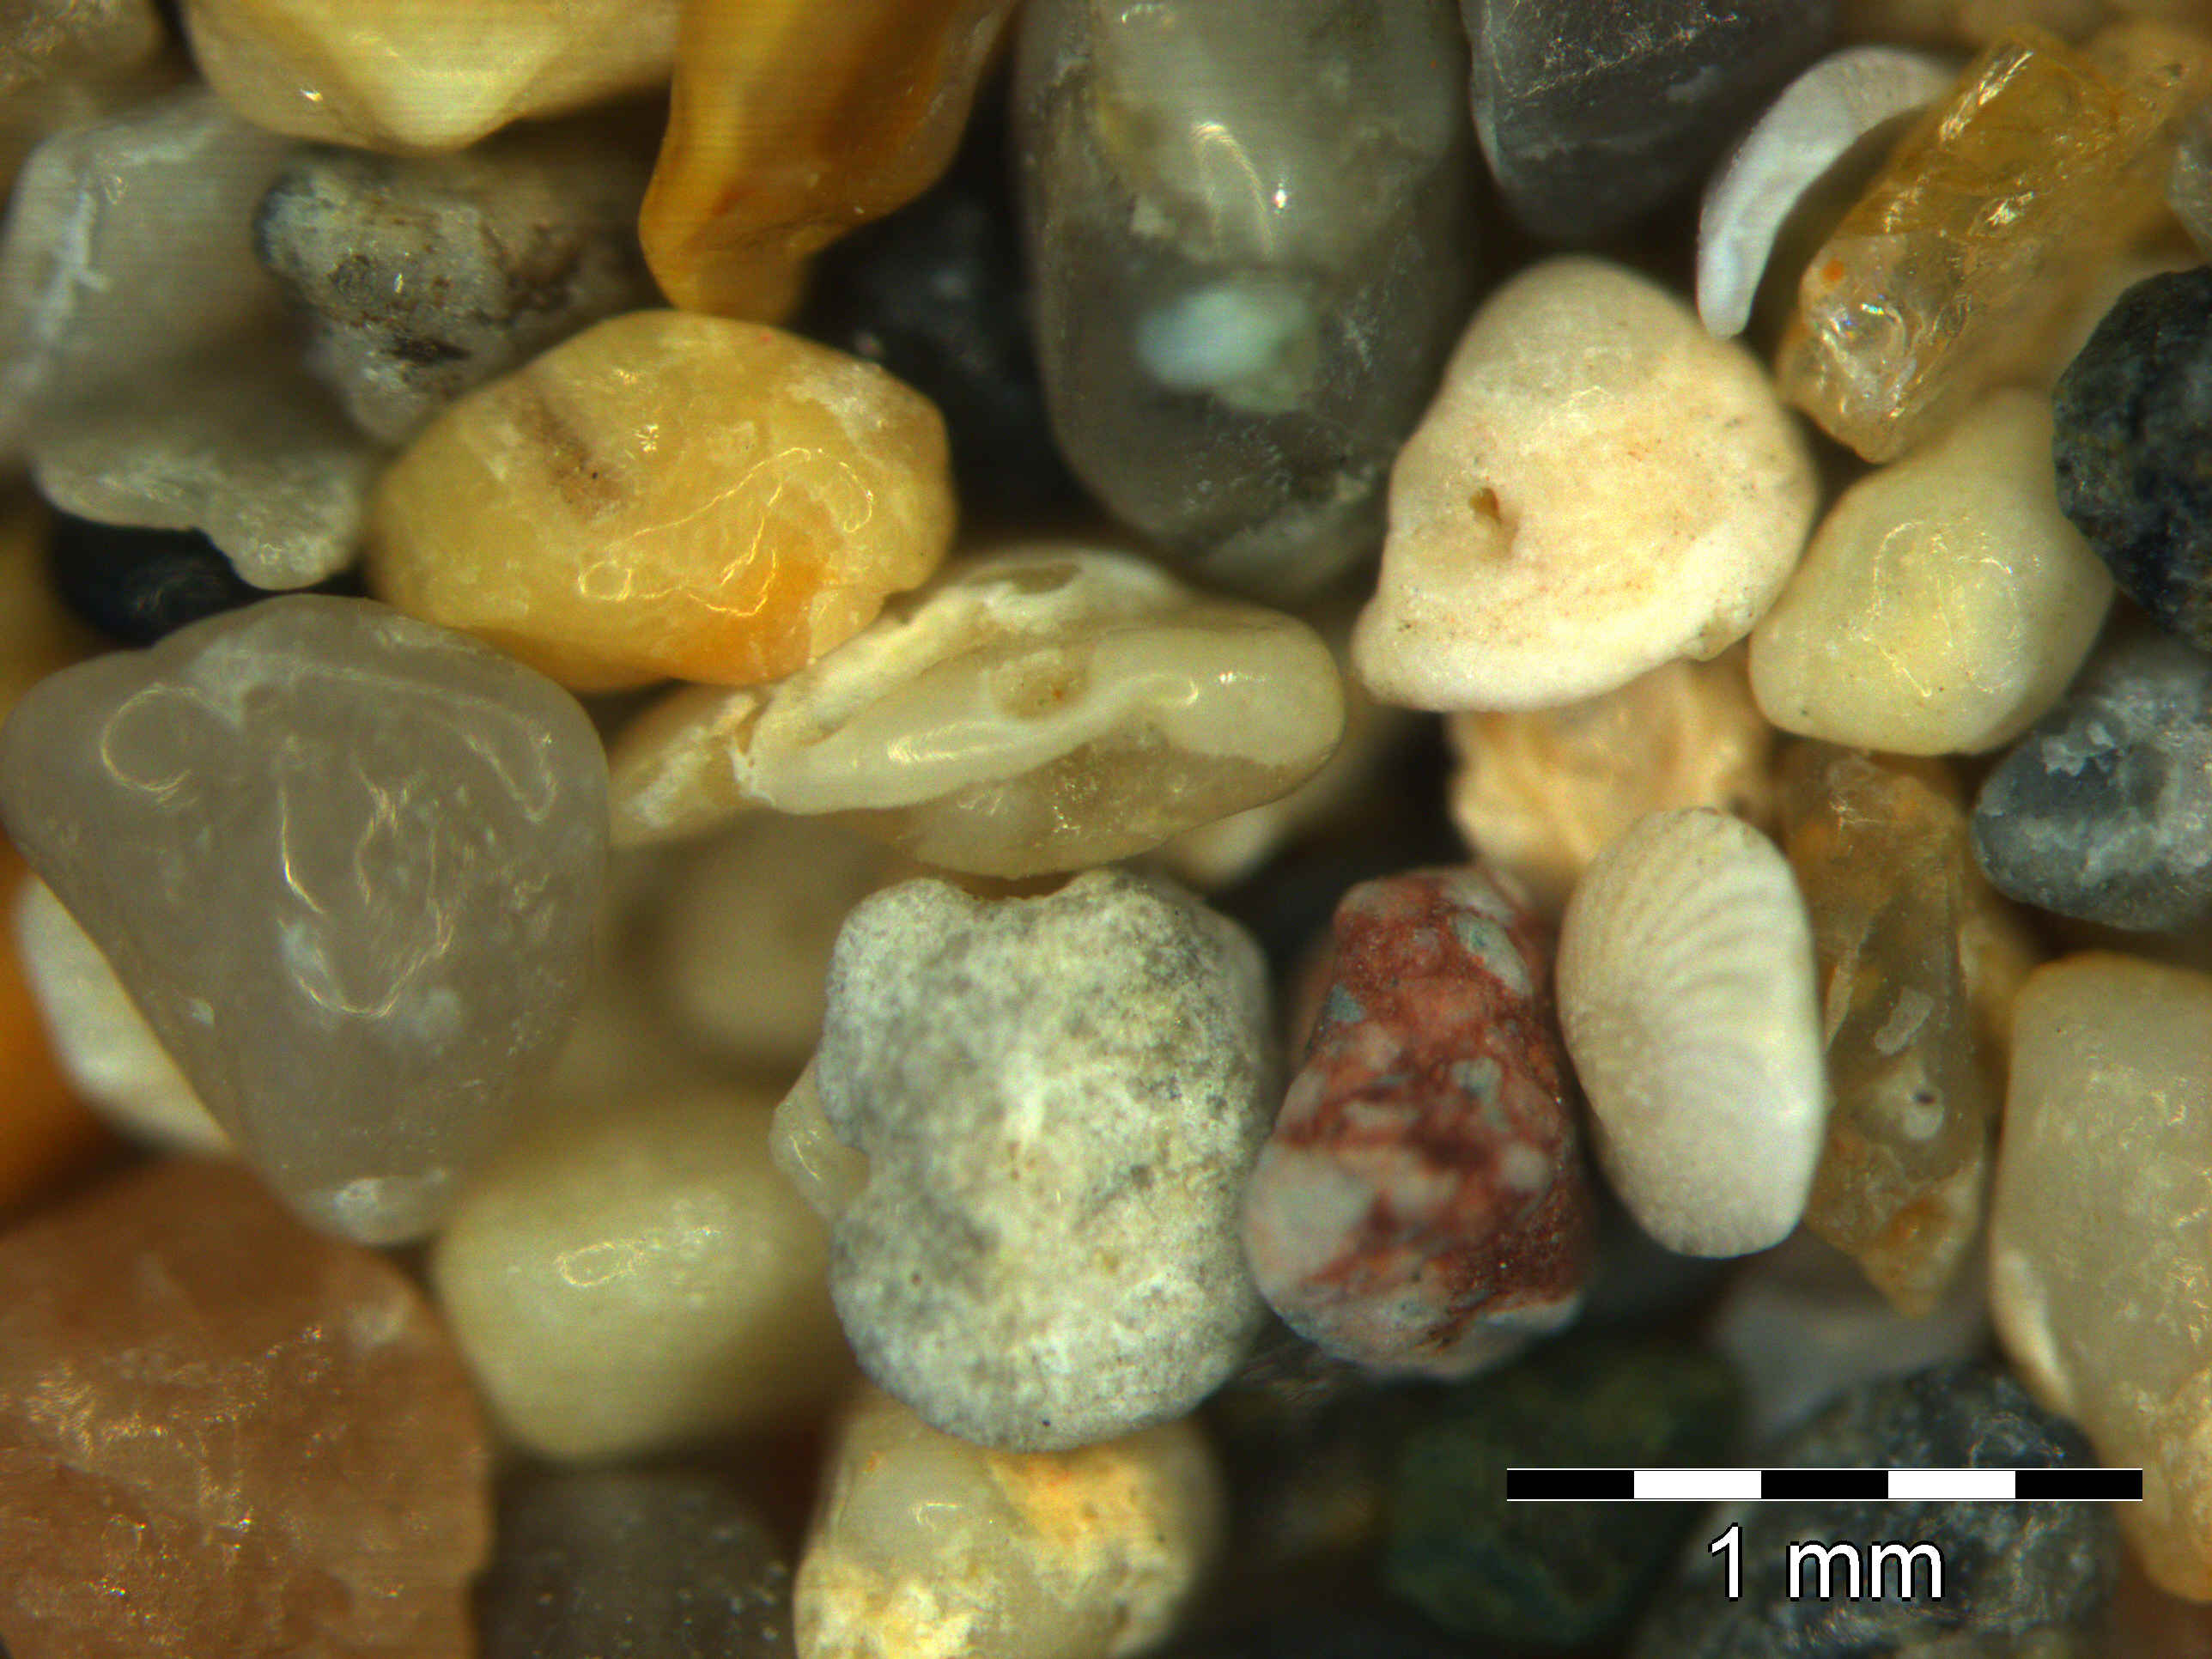 Sand Collection - Sand from Ecuador